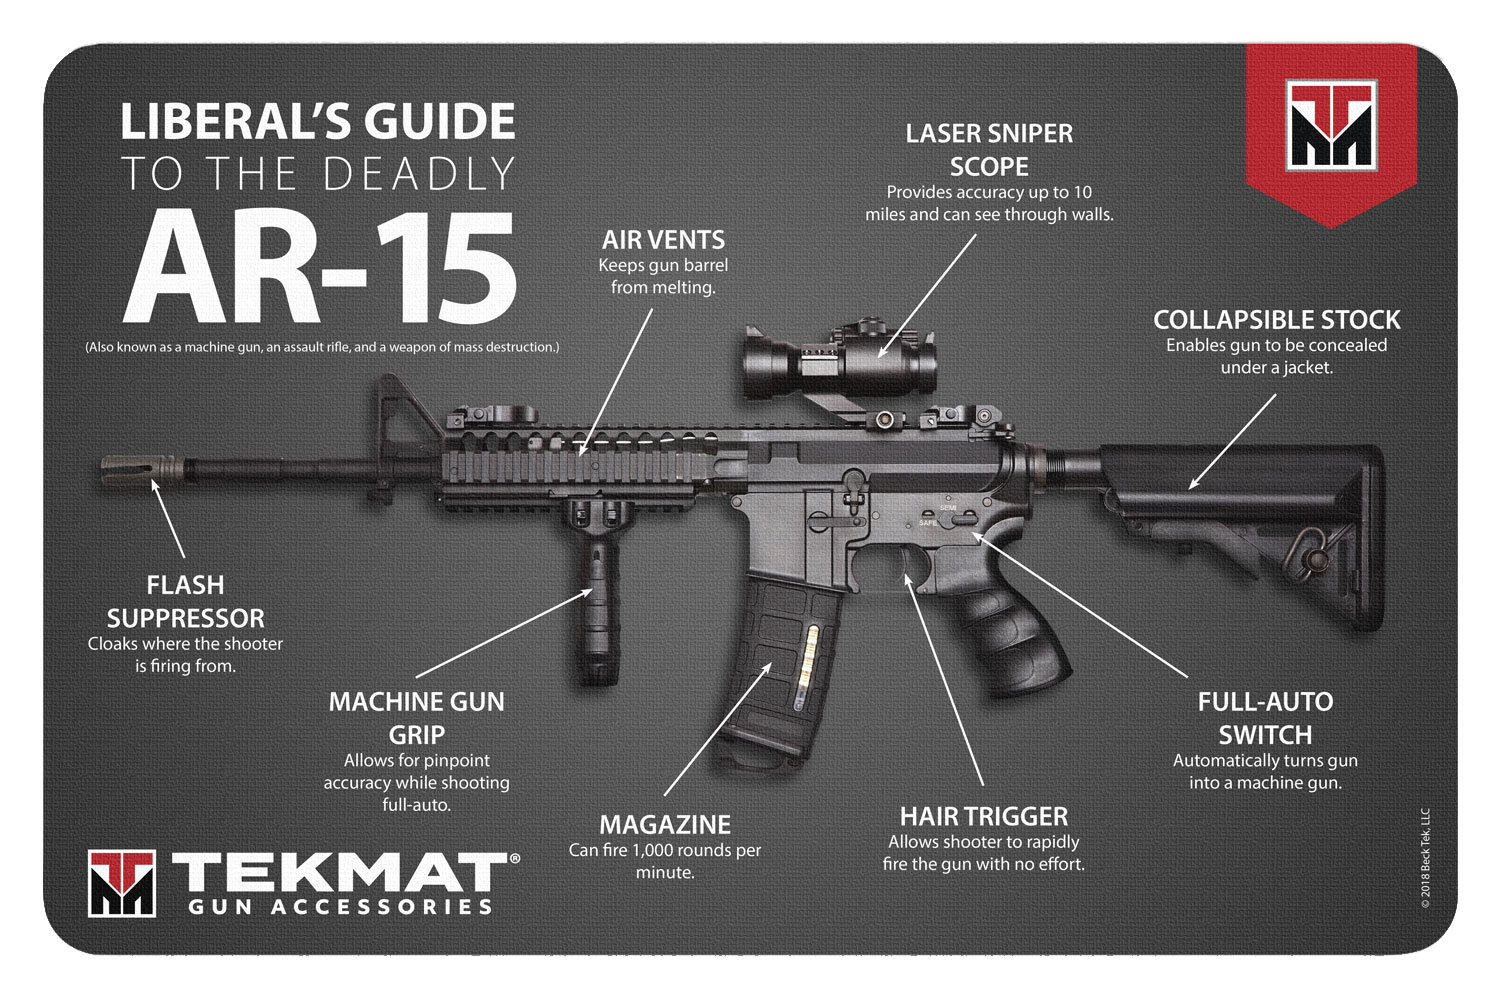 TEKMAT LIBERALS GUIDE TO THE AR15